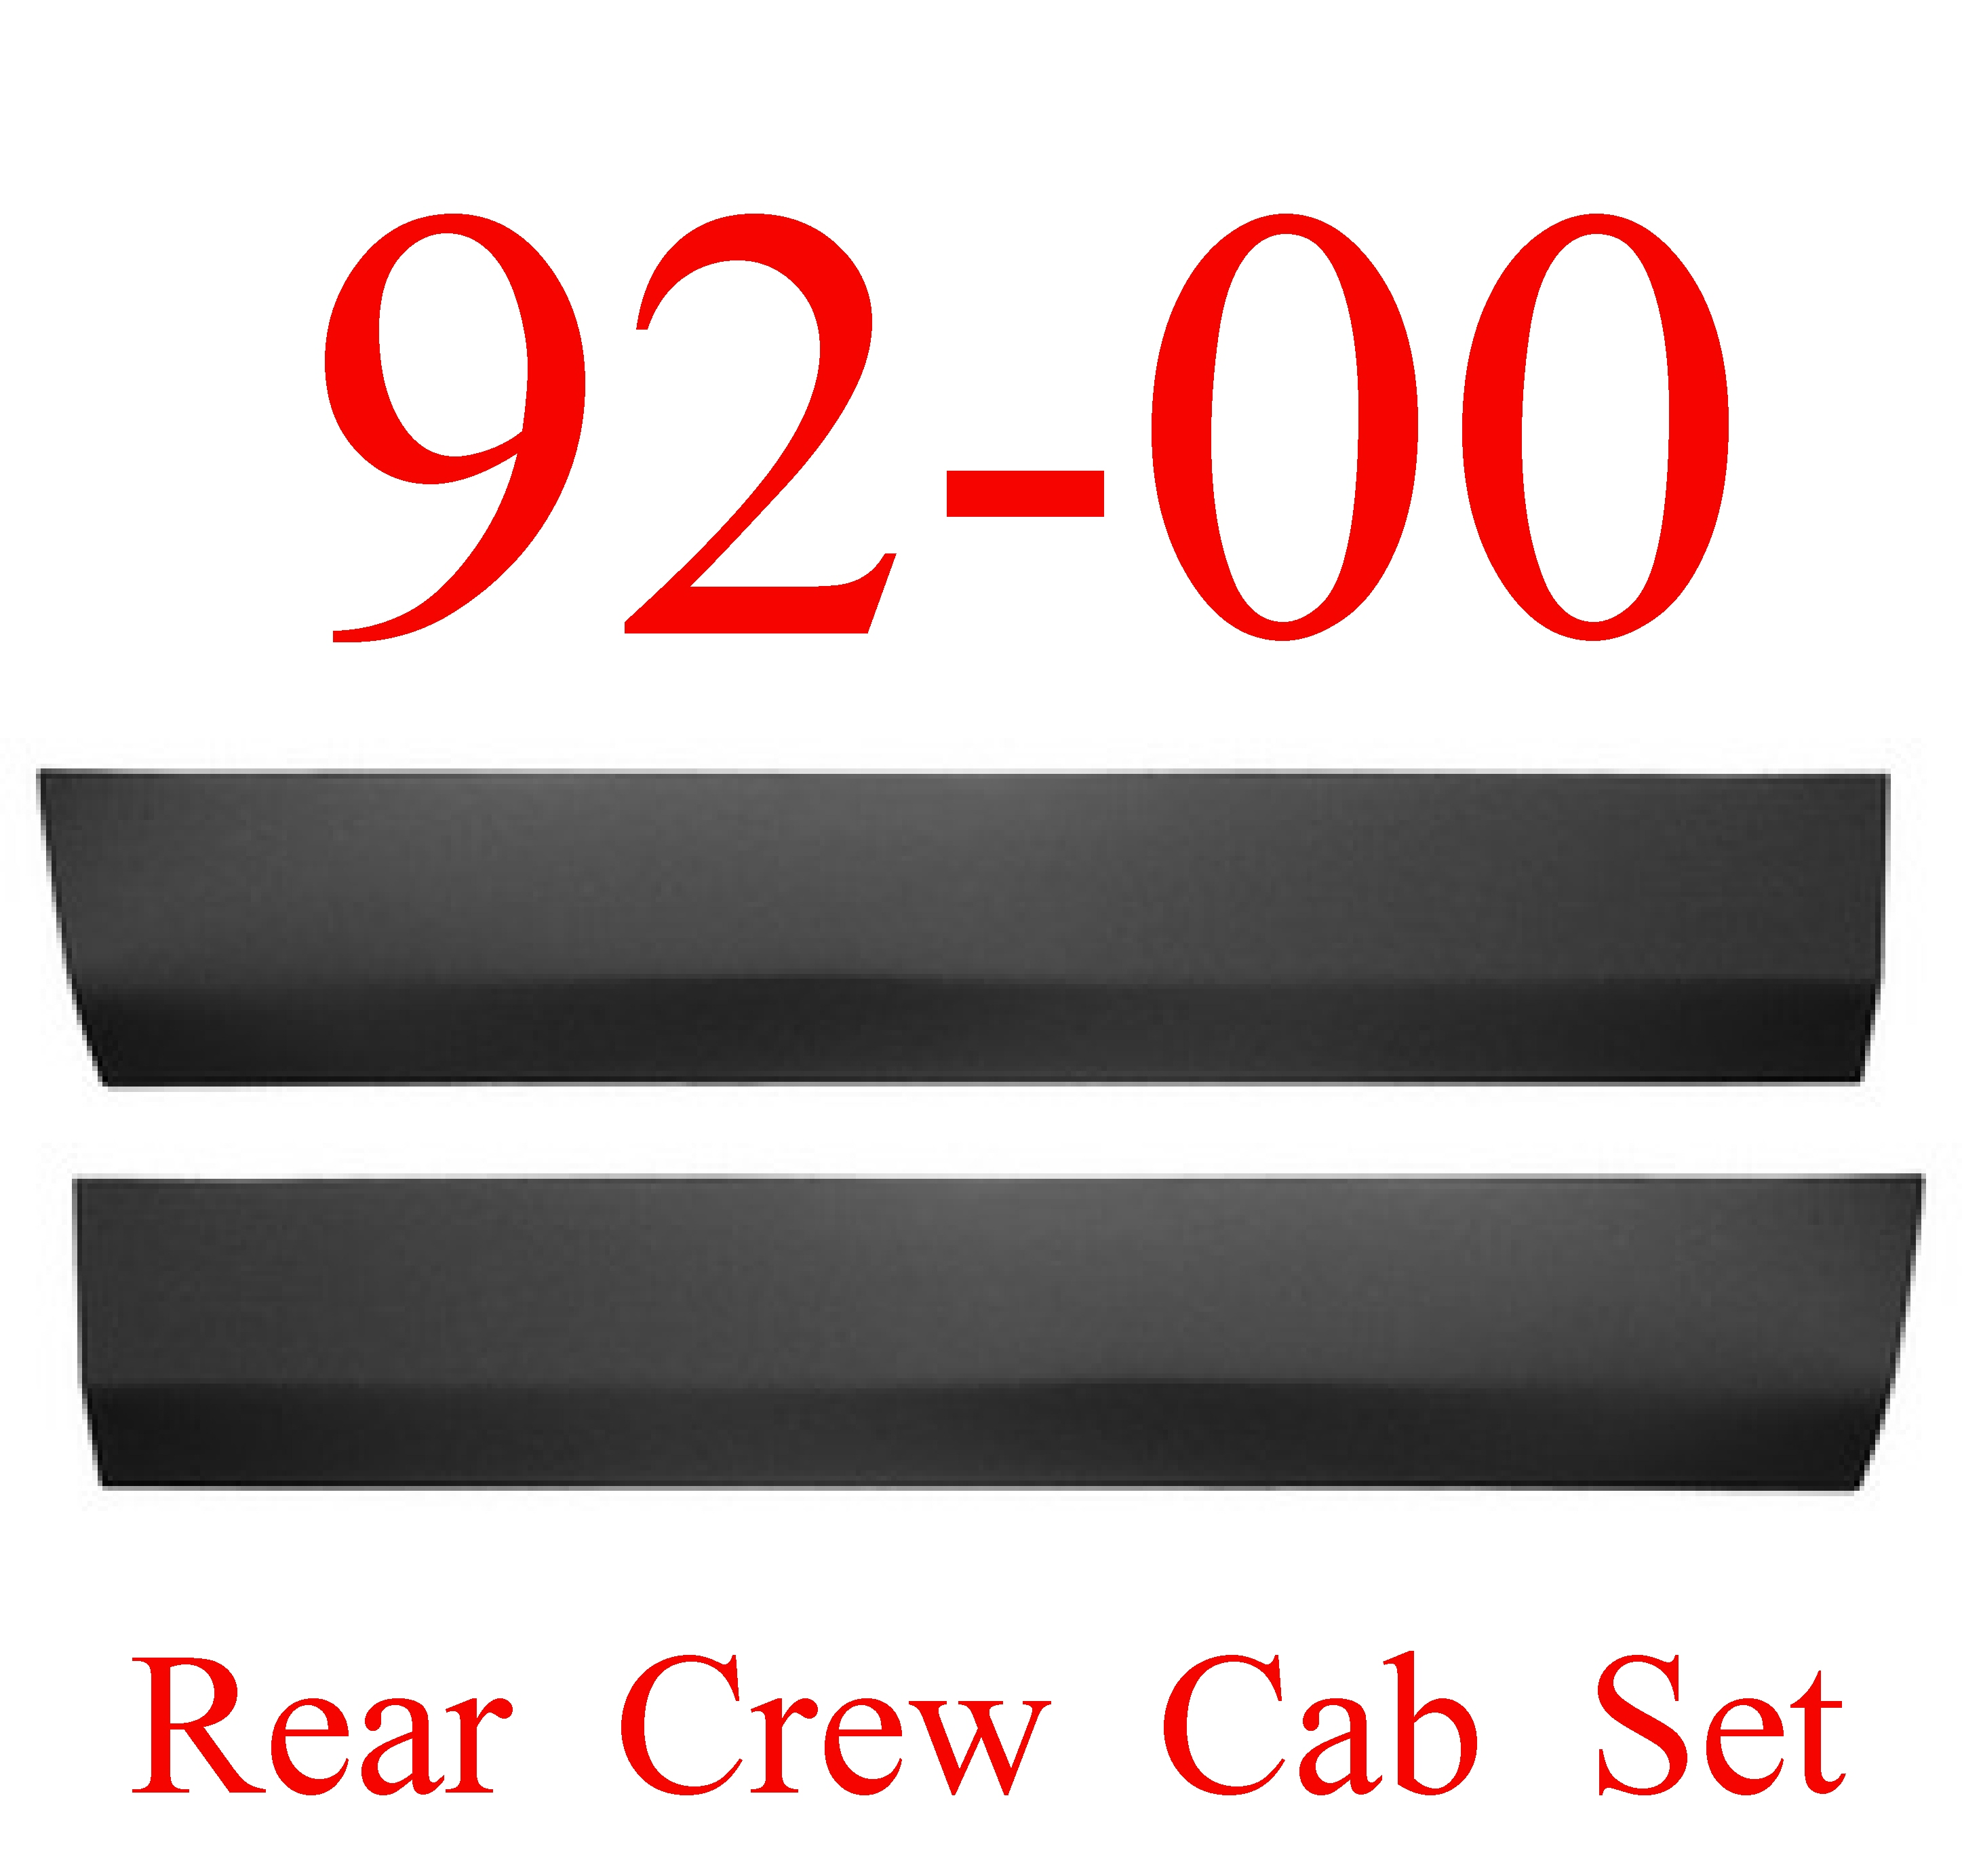 92 00 Chevy GMC Crew Cab Rear Lower Door Skin SET